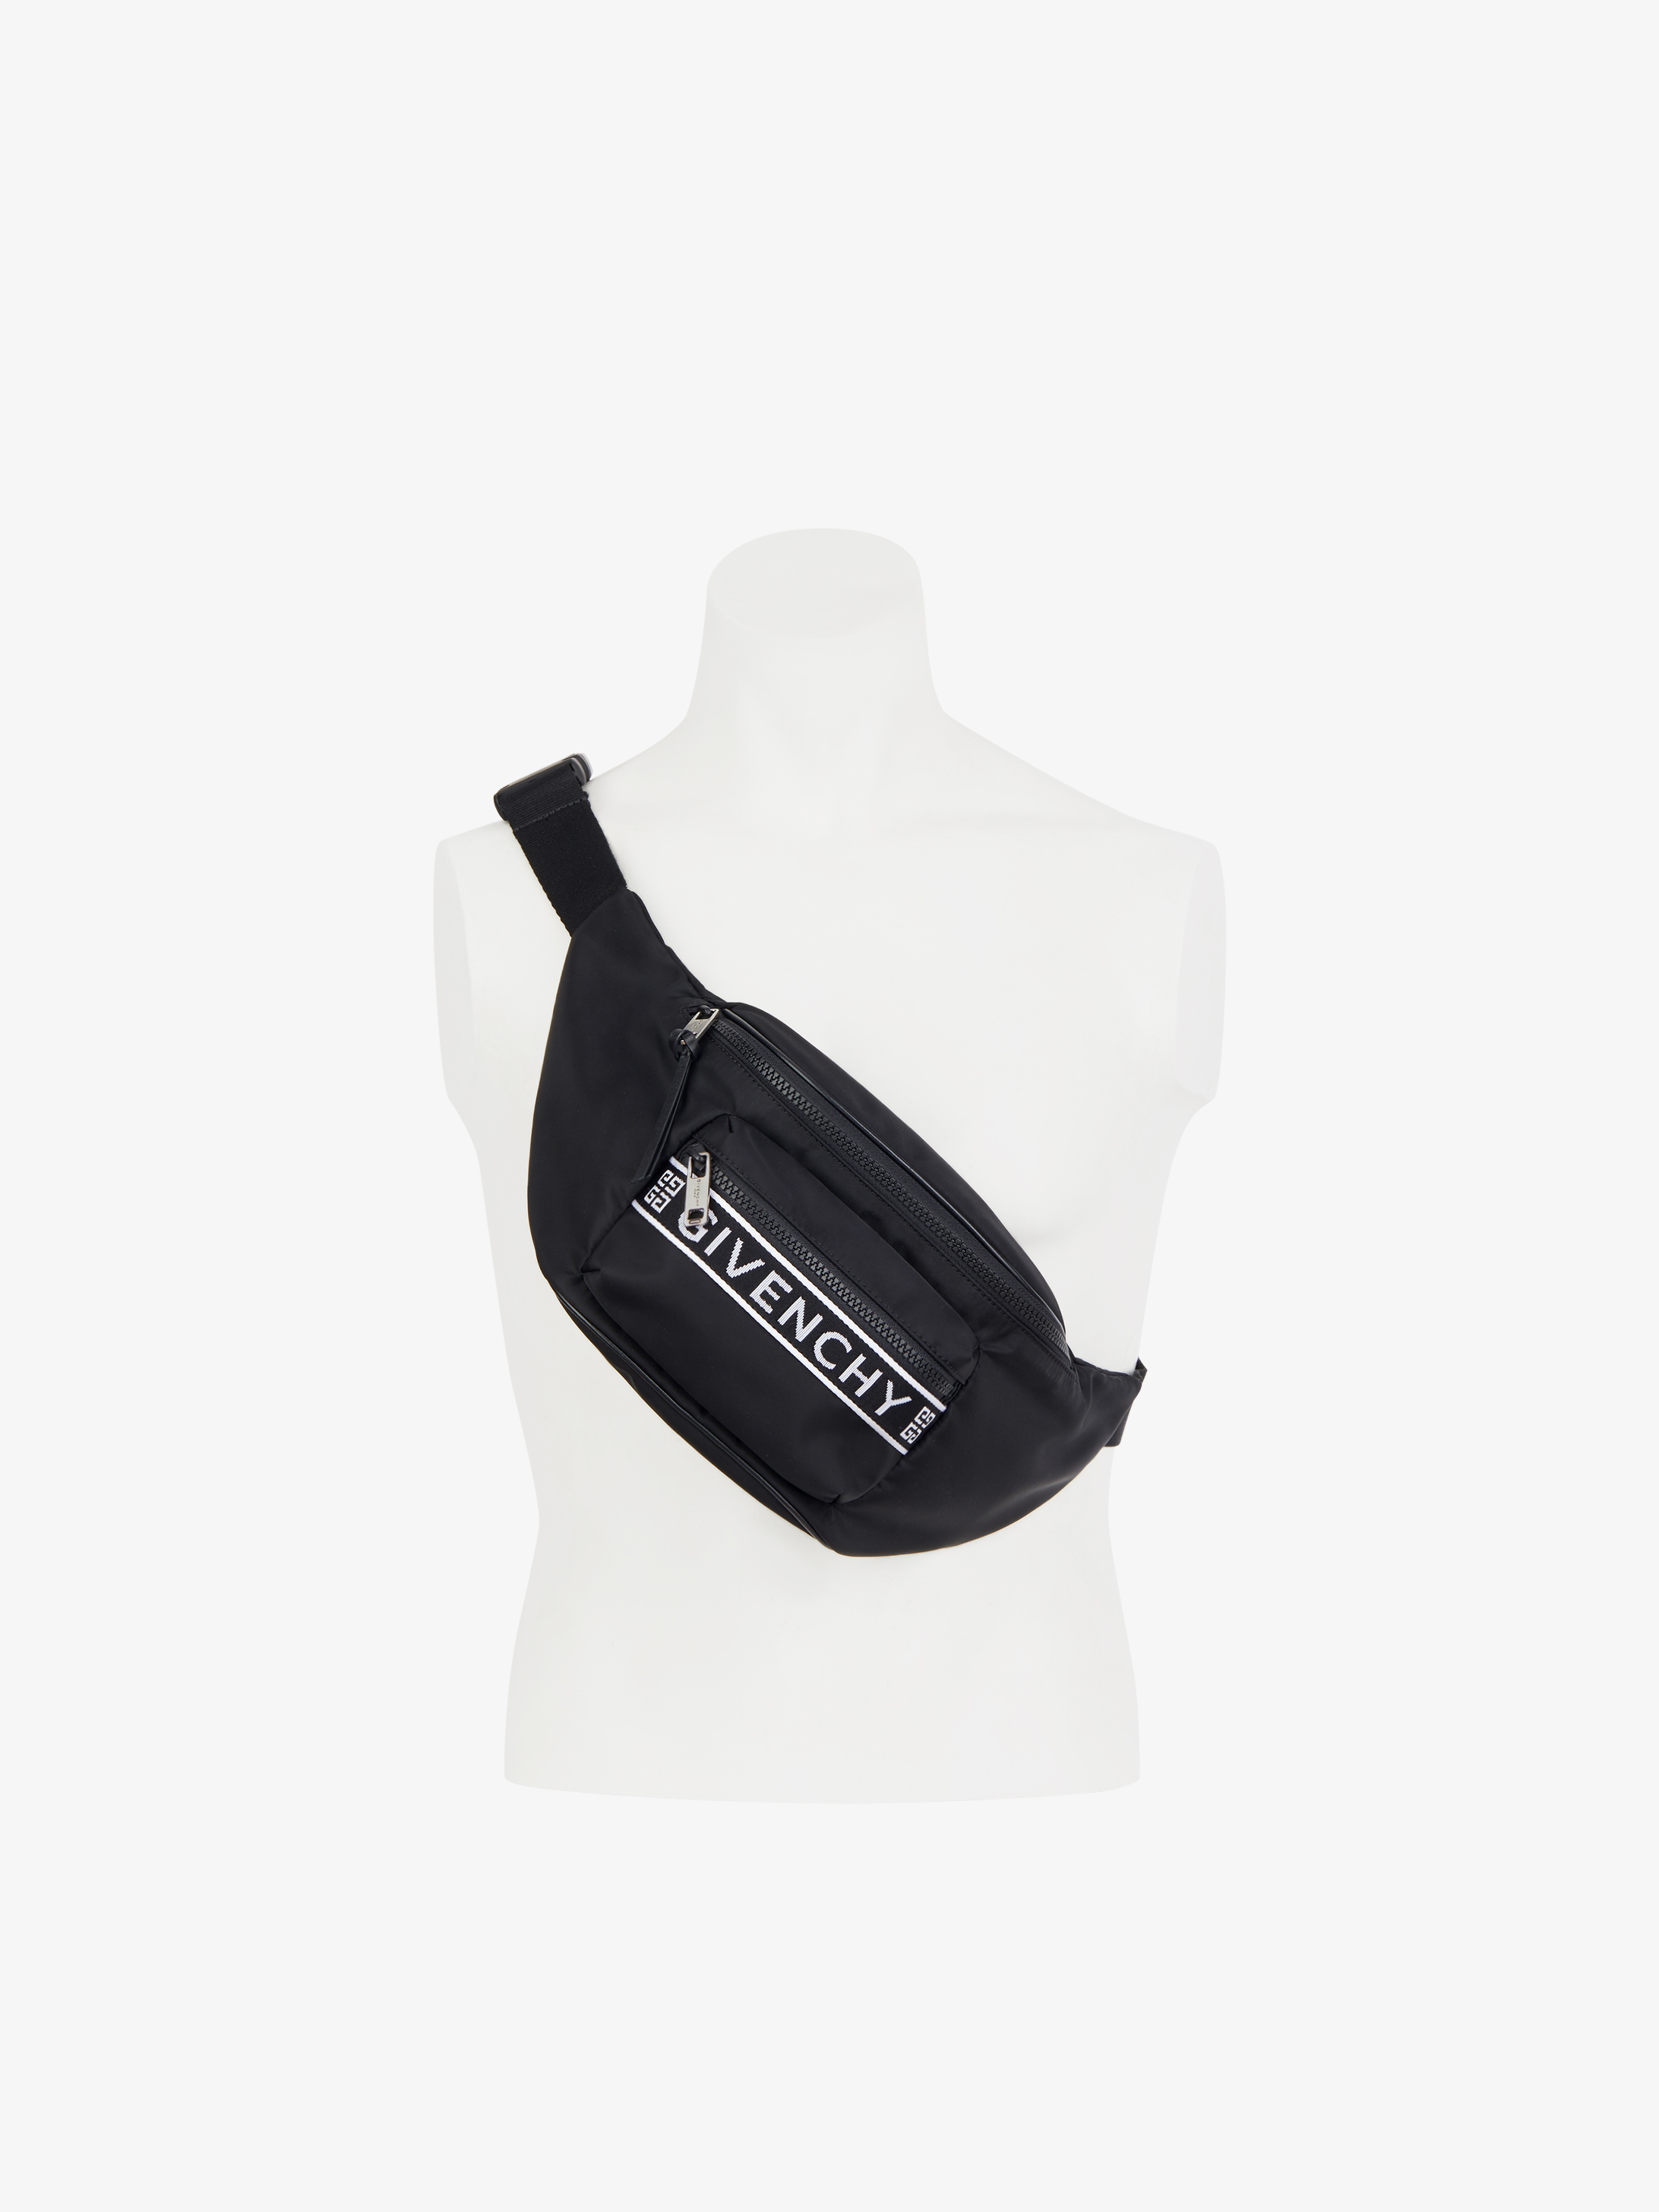 4G GIVENCHY large bum bag in nylon